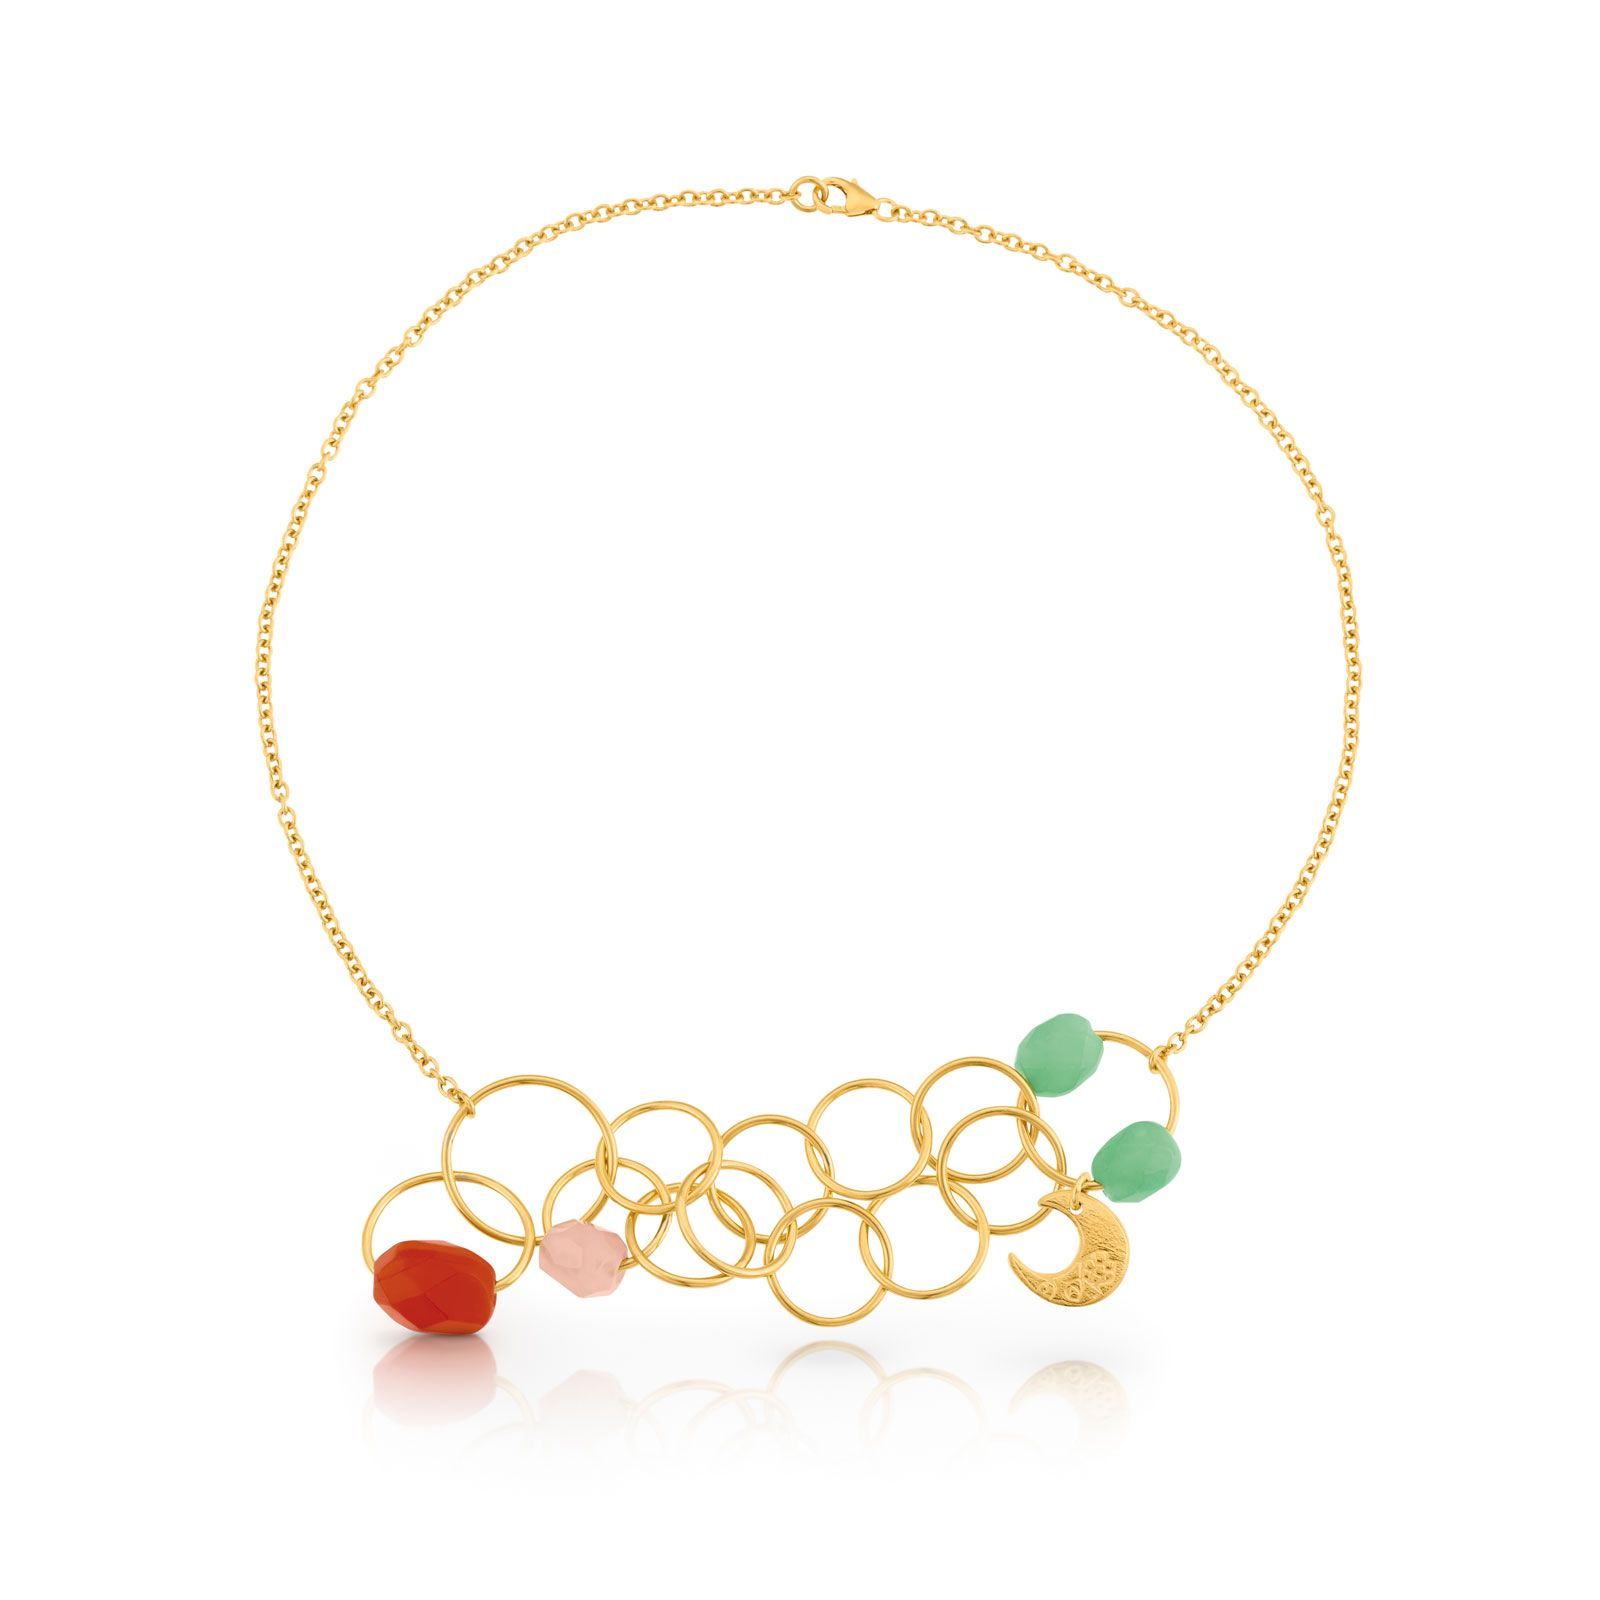 Locura Necklace with Gemstones by Tous | J is for Jewelry ...